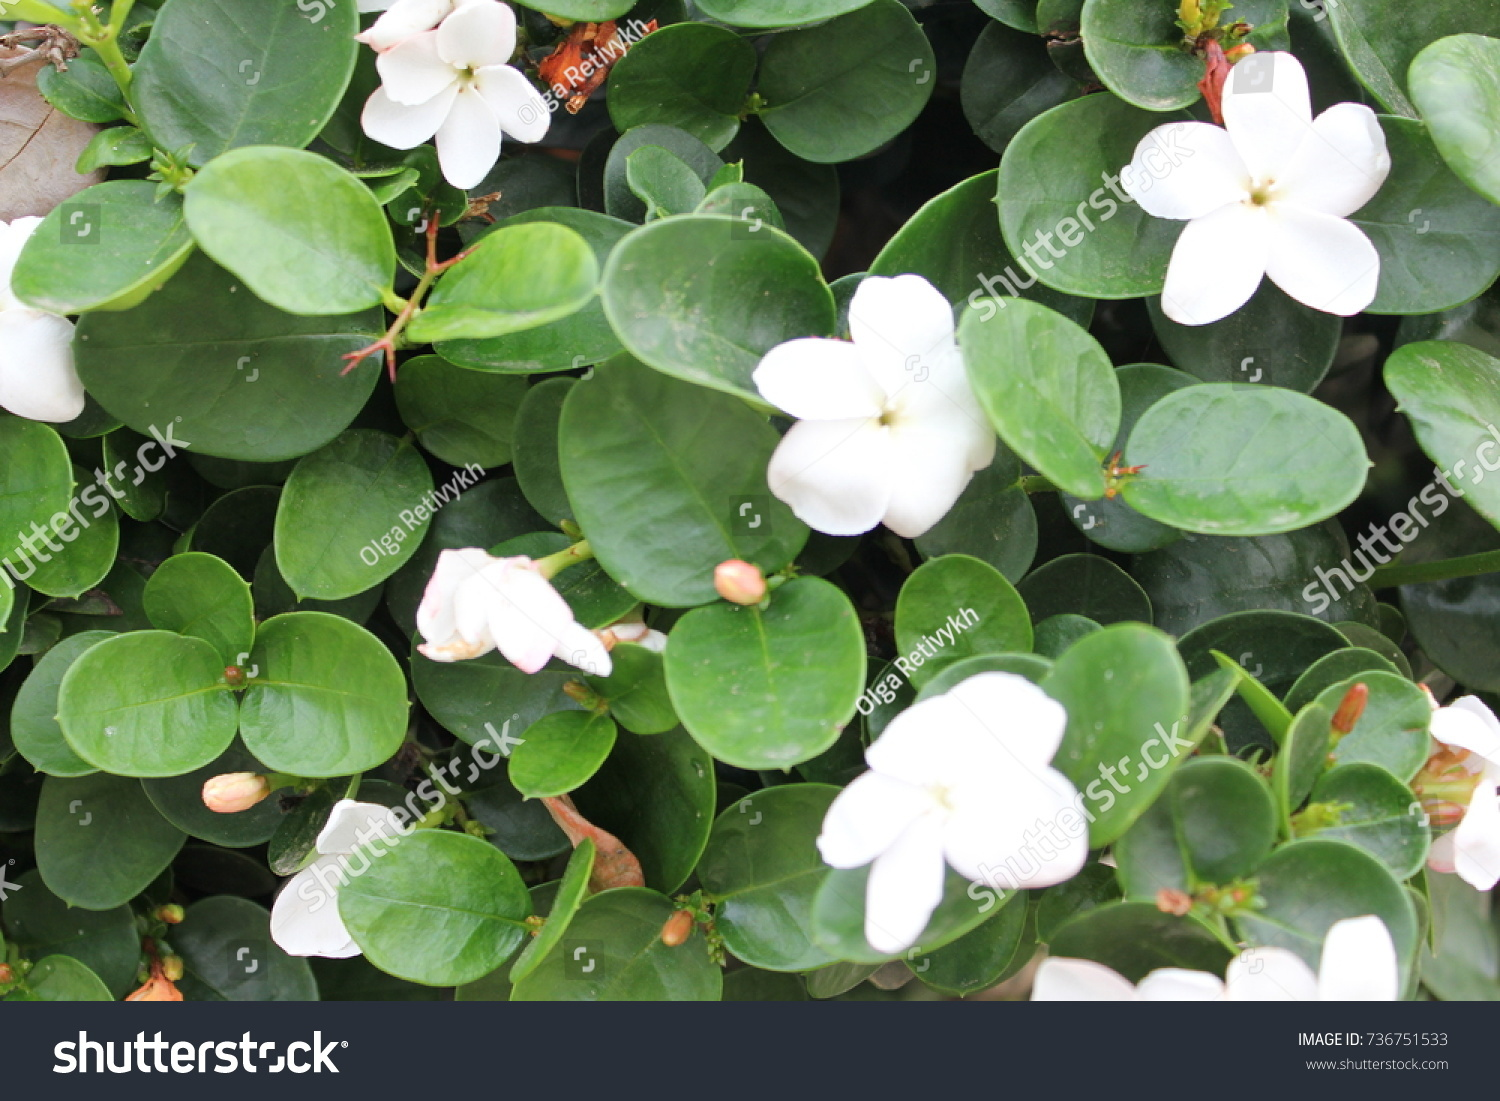 Green bush white flowers stock photo 736751533 shutterstock green bush with white flowers mightylinksfo Images